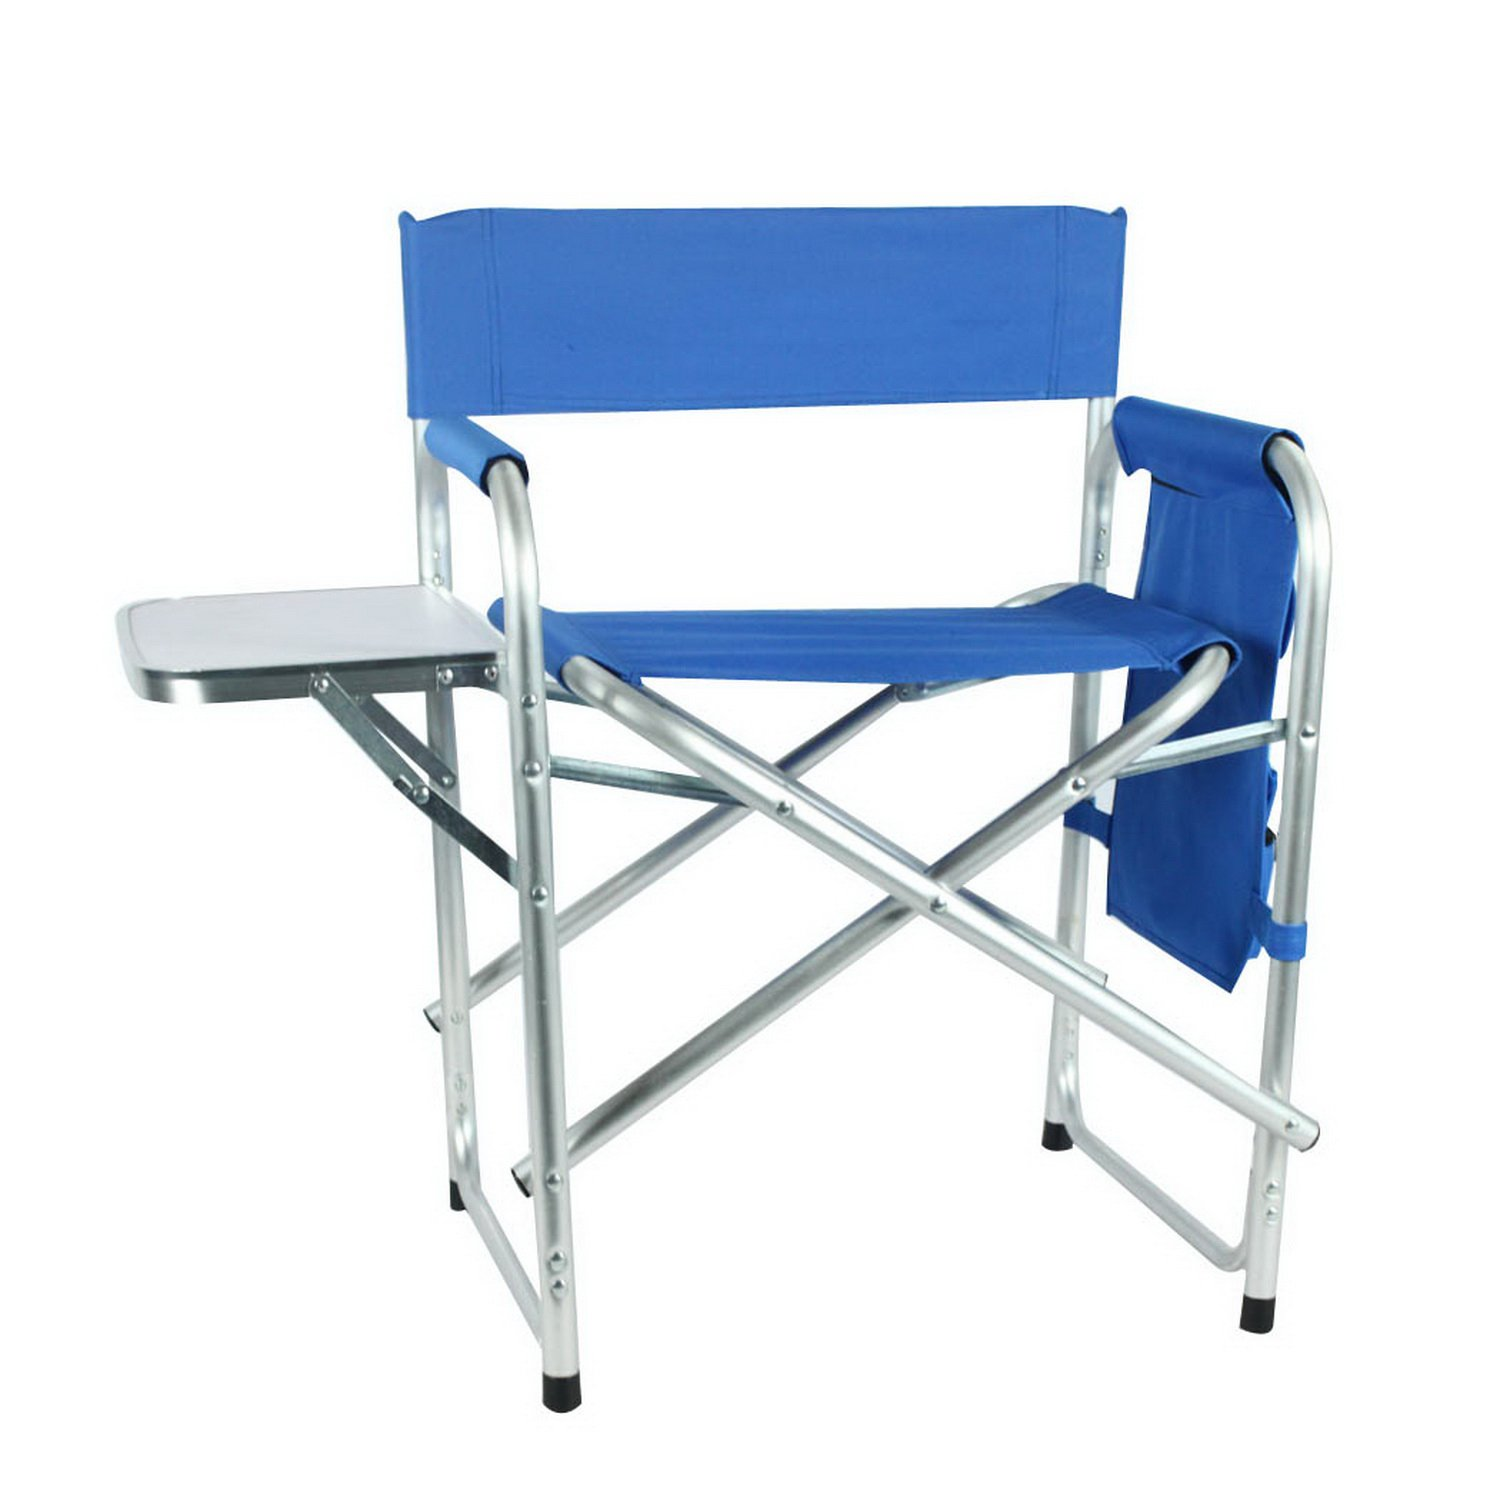 Domary Portable Director's Chair Heavy Duty Steel Folding Chair with Side Table & Side Storage Bag, Supports 300 lbs